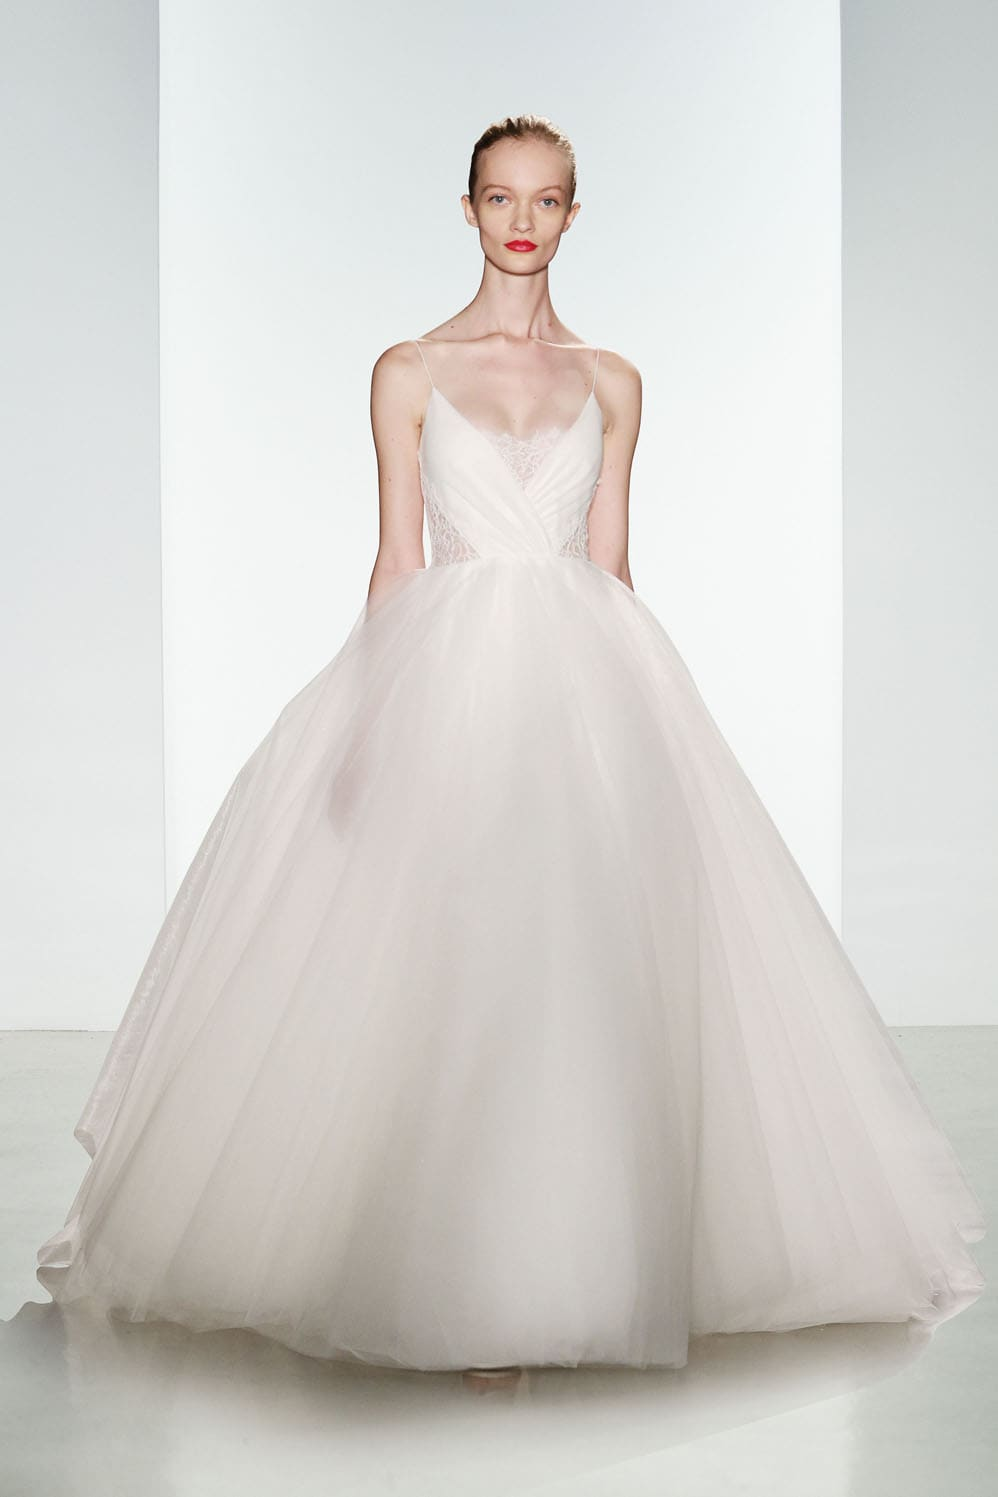 Penny by christos tulle ballgown wedding dress for High low ball gown wedding dress